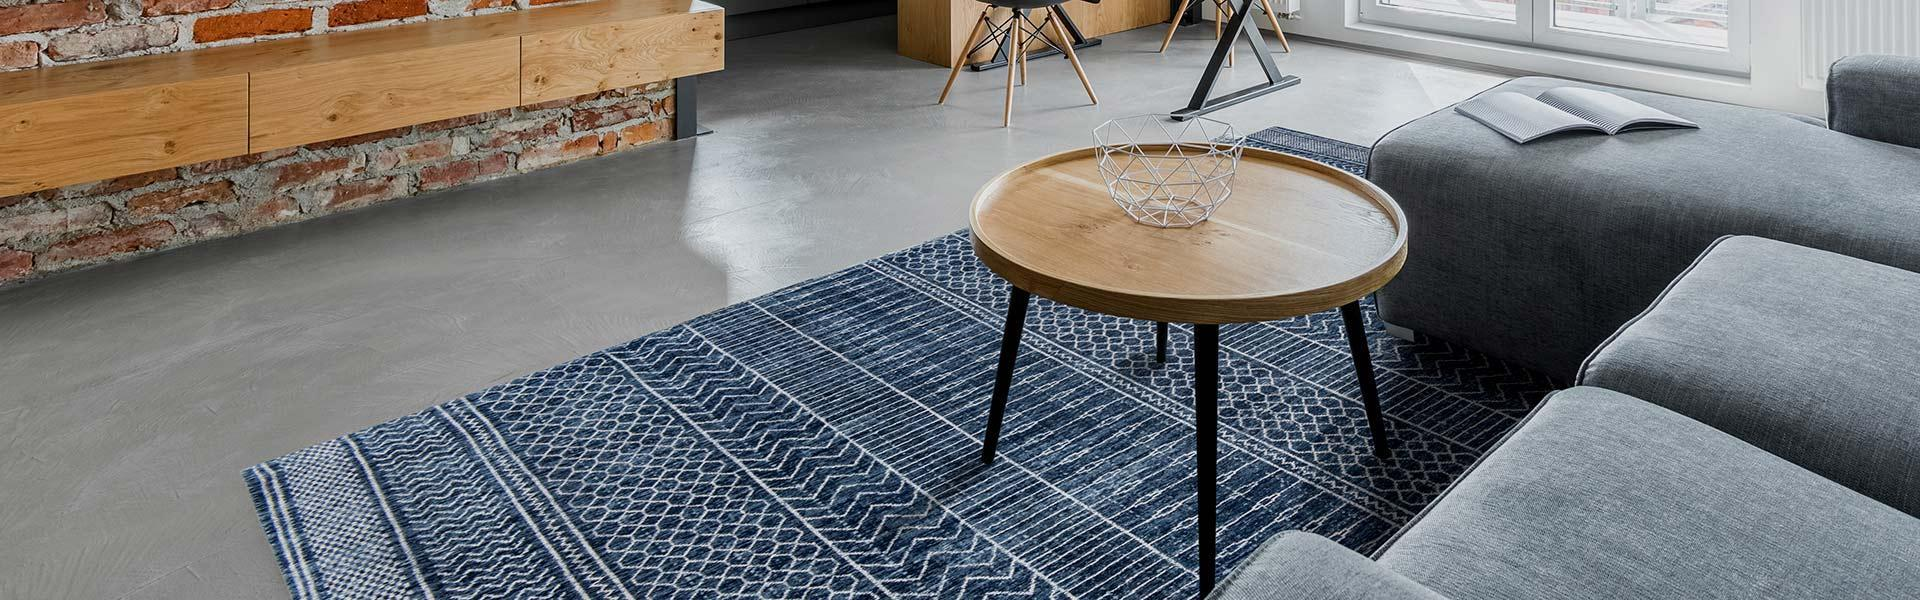 10% to 20% OFF RUG FLASH SALE NOW ON